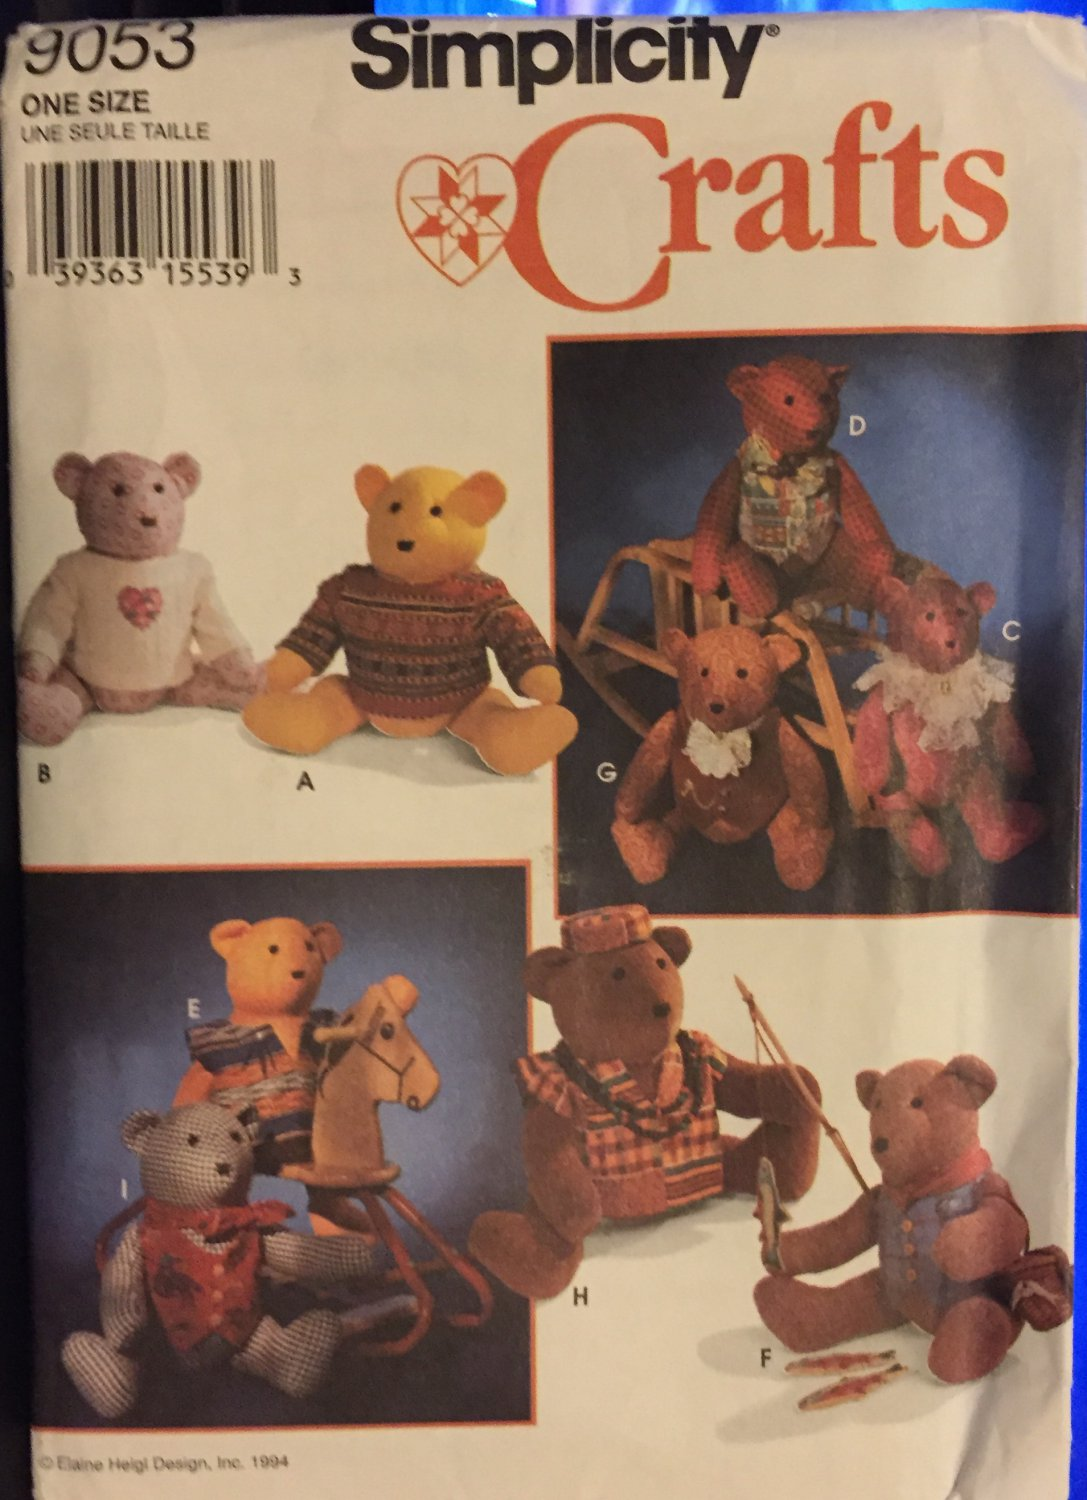 Simplicity 9053 Craft Sewing Pattern Teddy Bears 20 inch and clothes